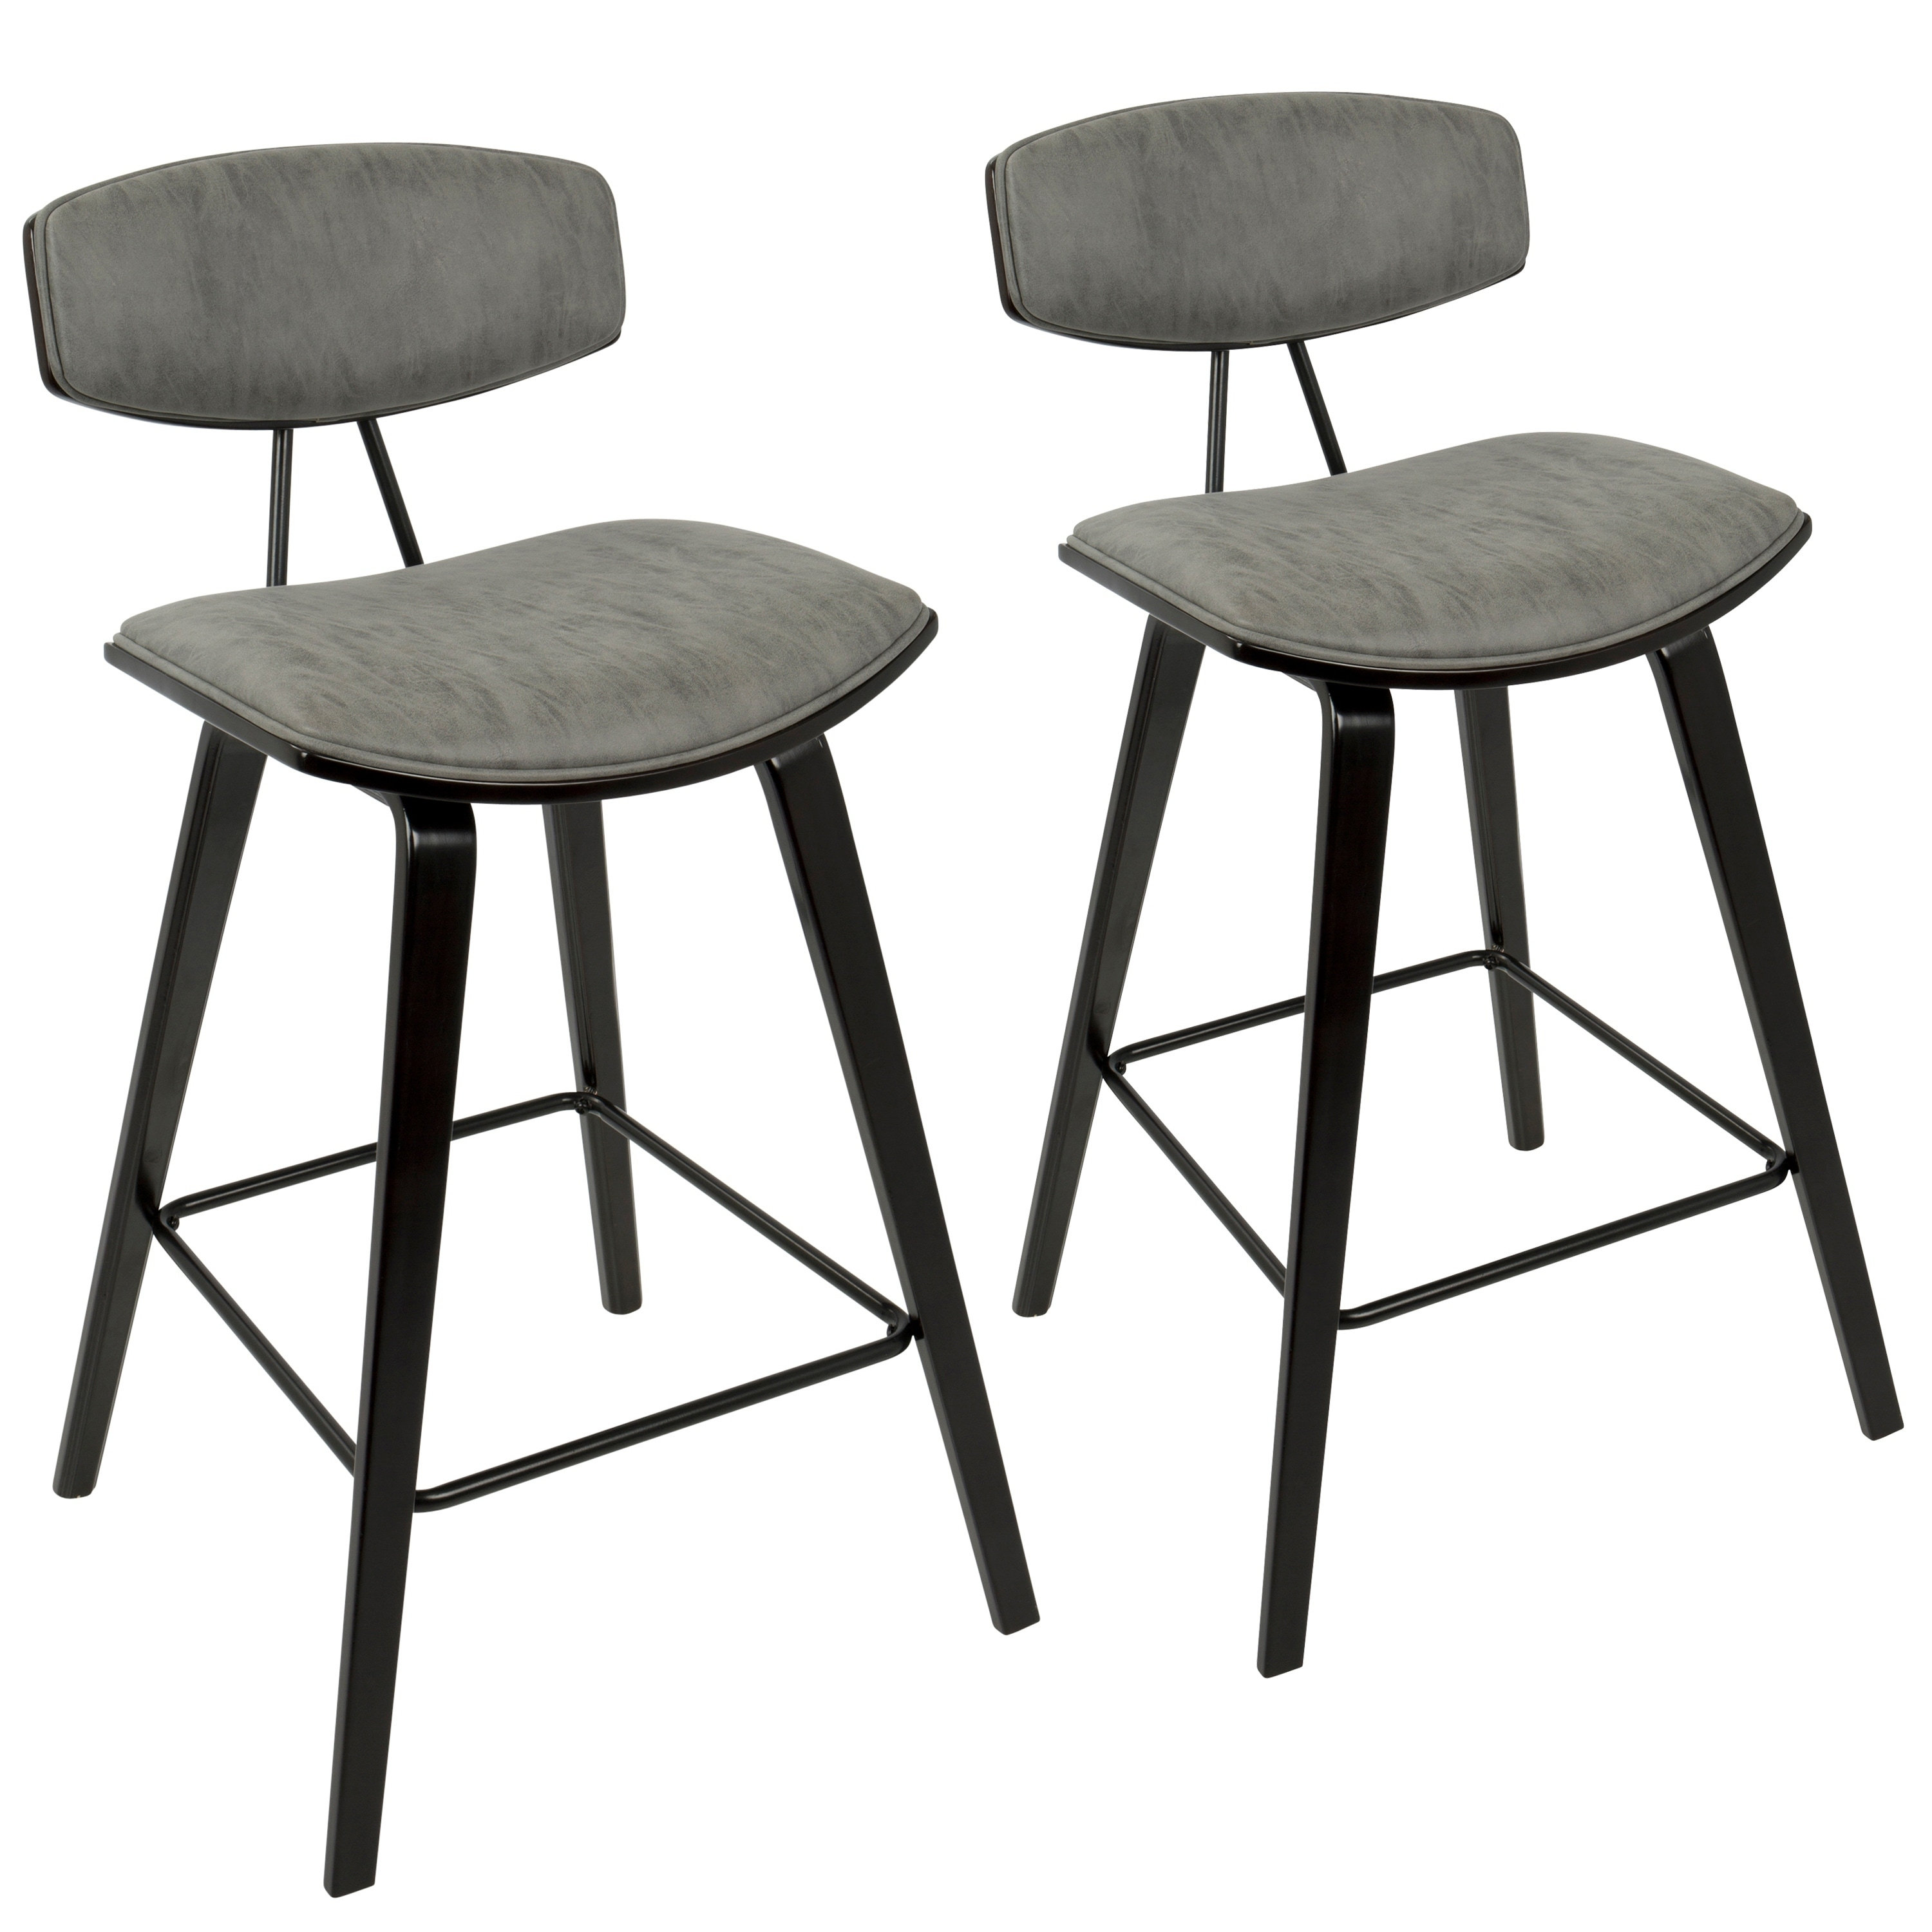 Shop Damato 26 Counter Stool With Faux Suede Upholstery Set Of 2